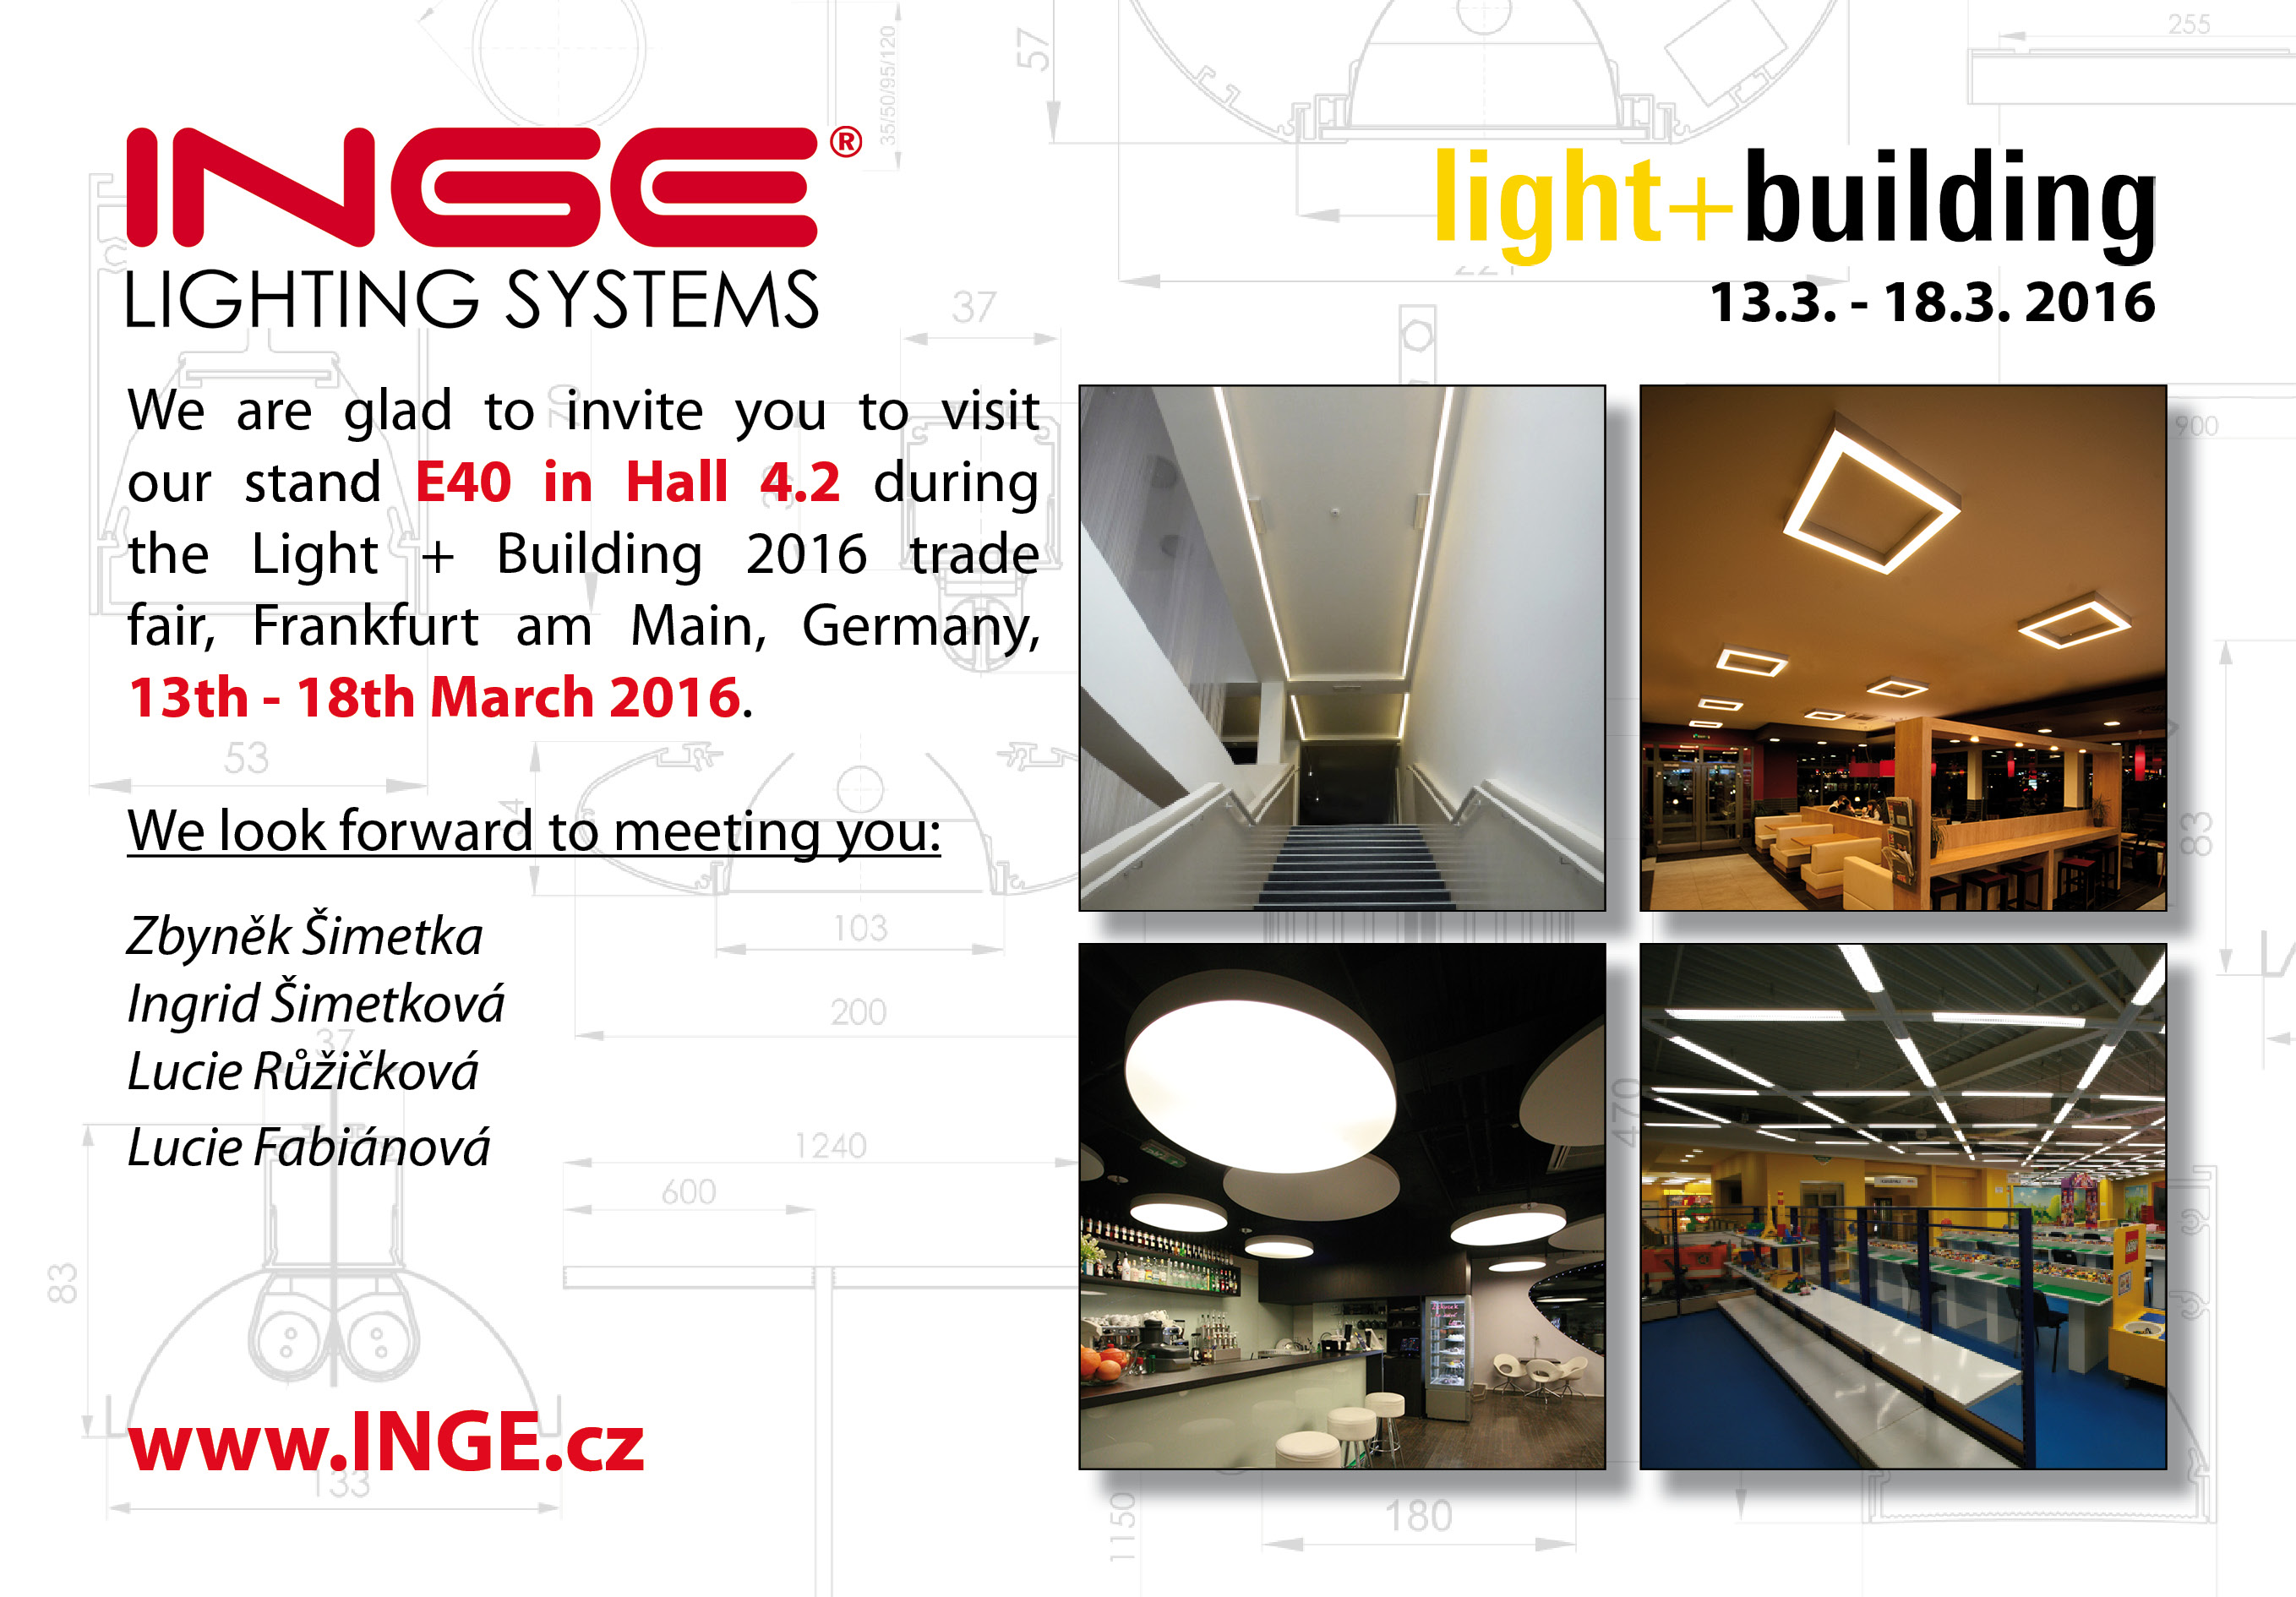 INGE invitation LB 2016